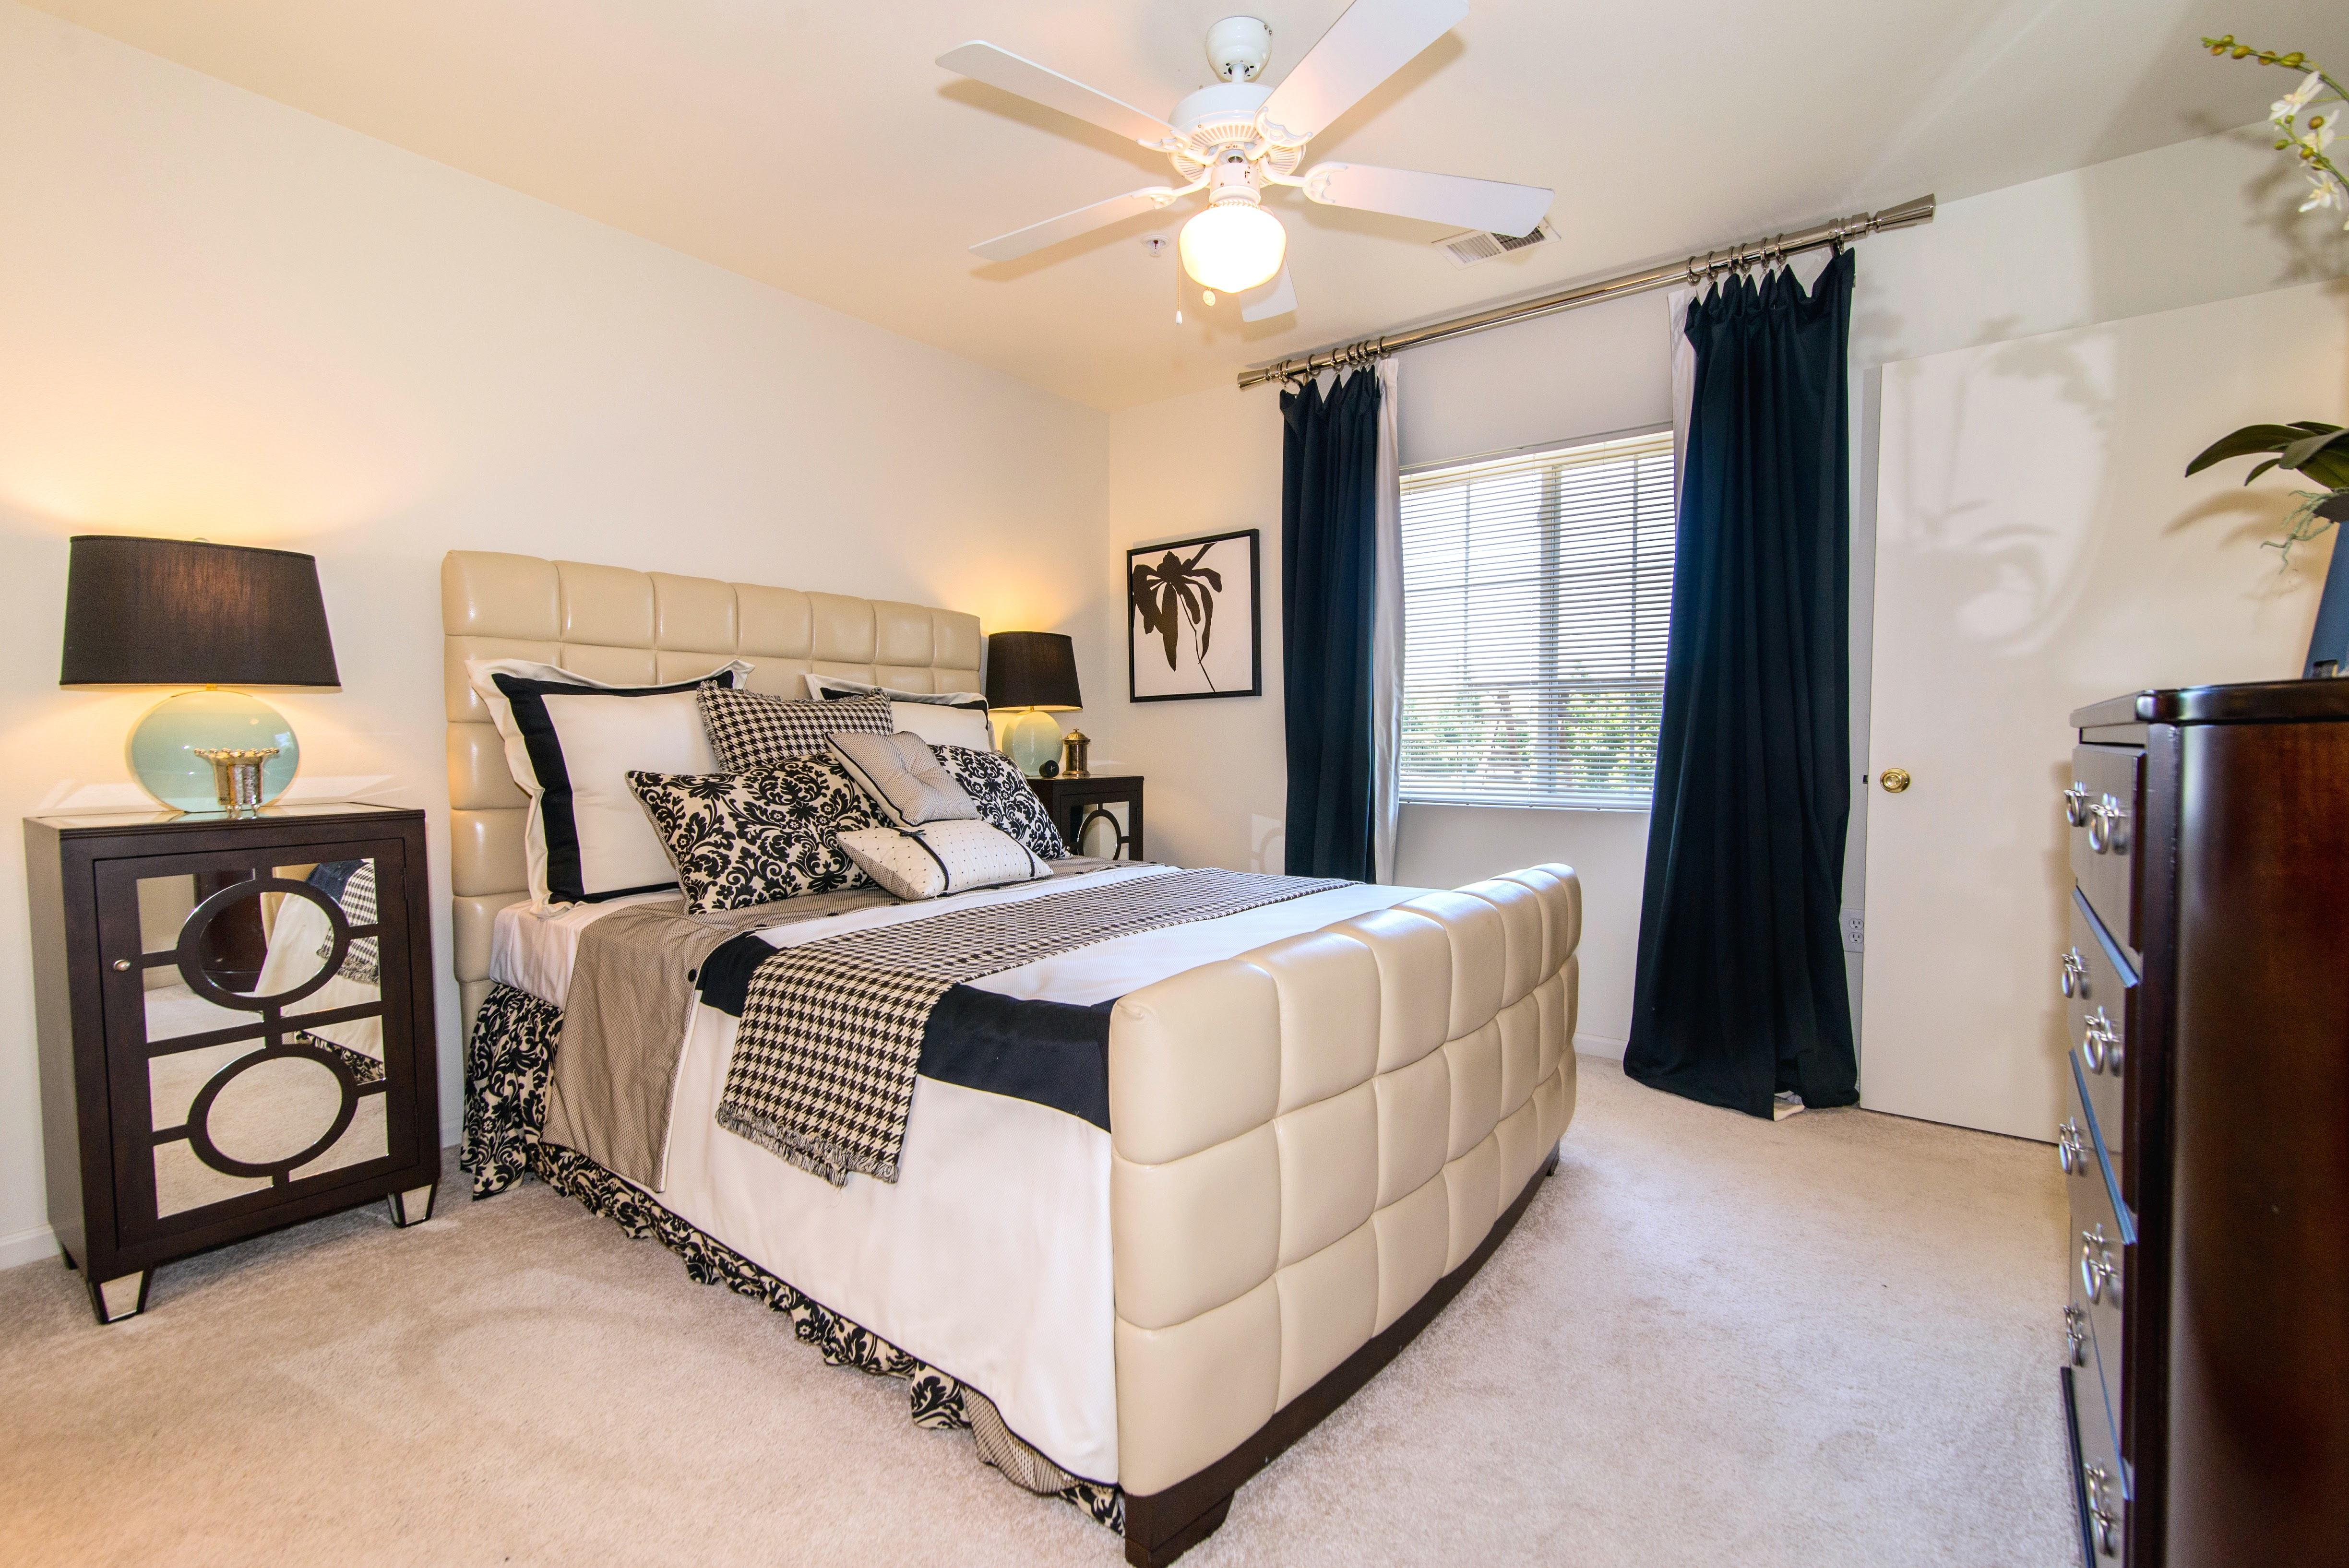 Deer meadow village apartments in columbia sc 803 783 4 for One bedroom apartments in columbia sc